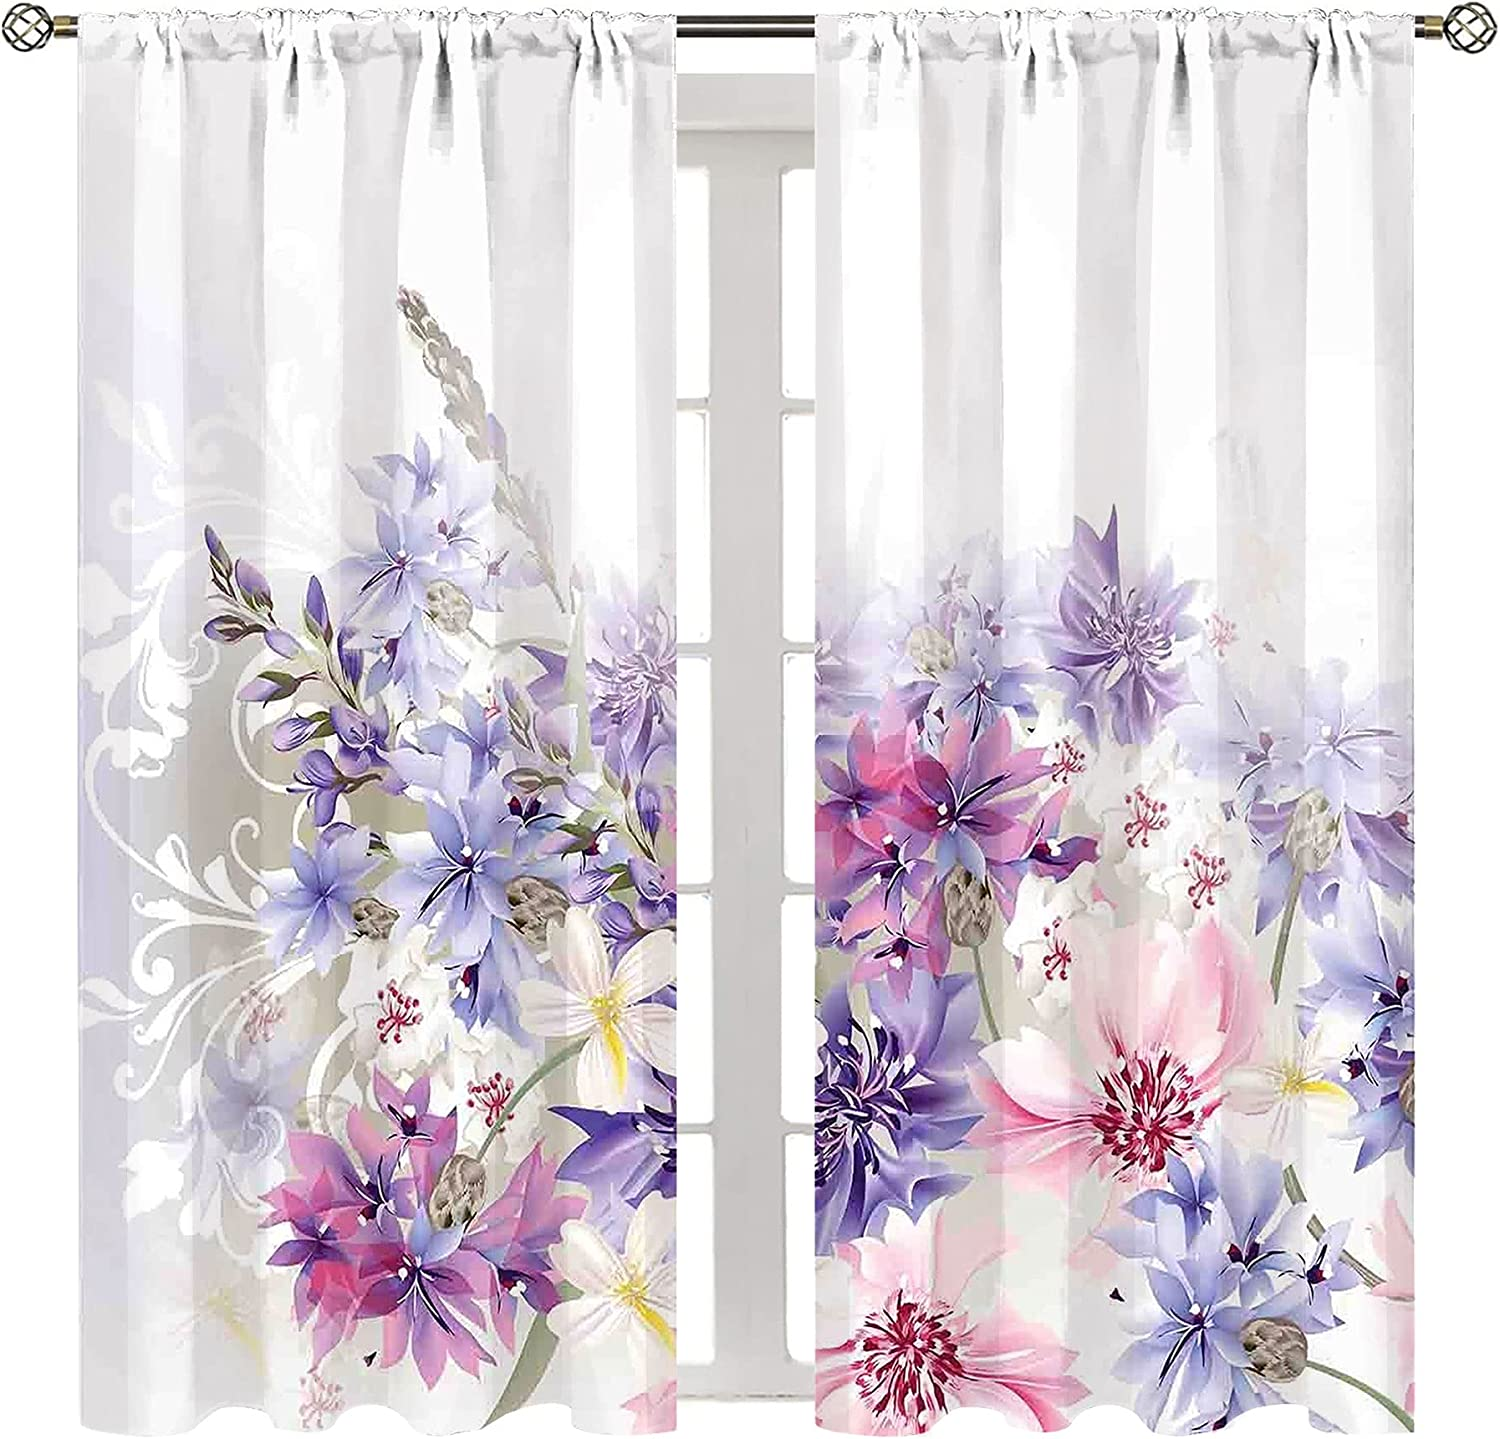 Ranking TOP3 HSERNED Cold and Ranking TOP19 Heat Drapes Lavenderastel Blocking Cornflowers